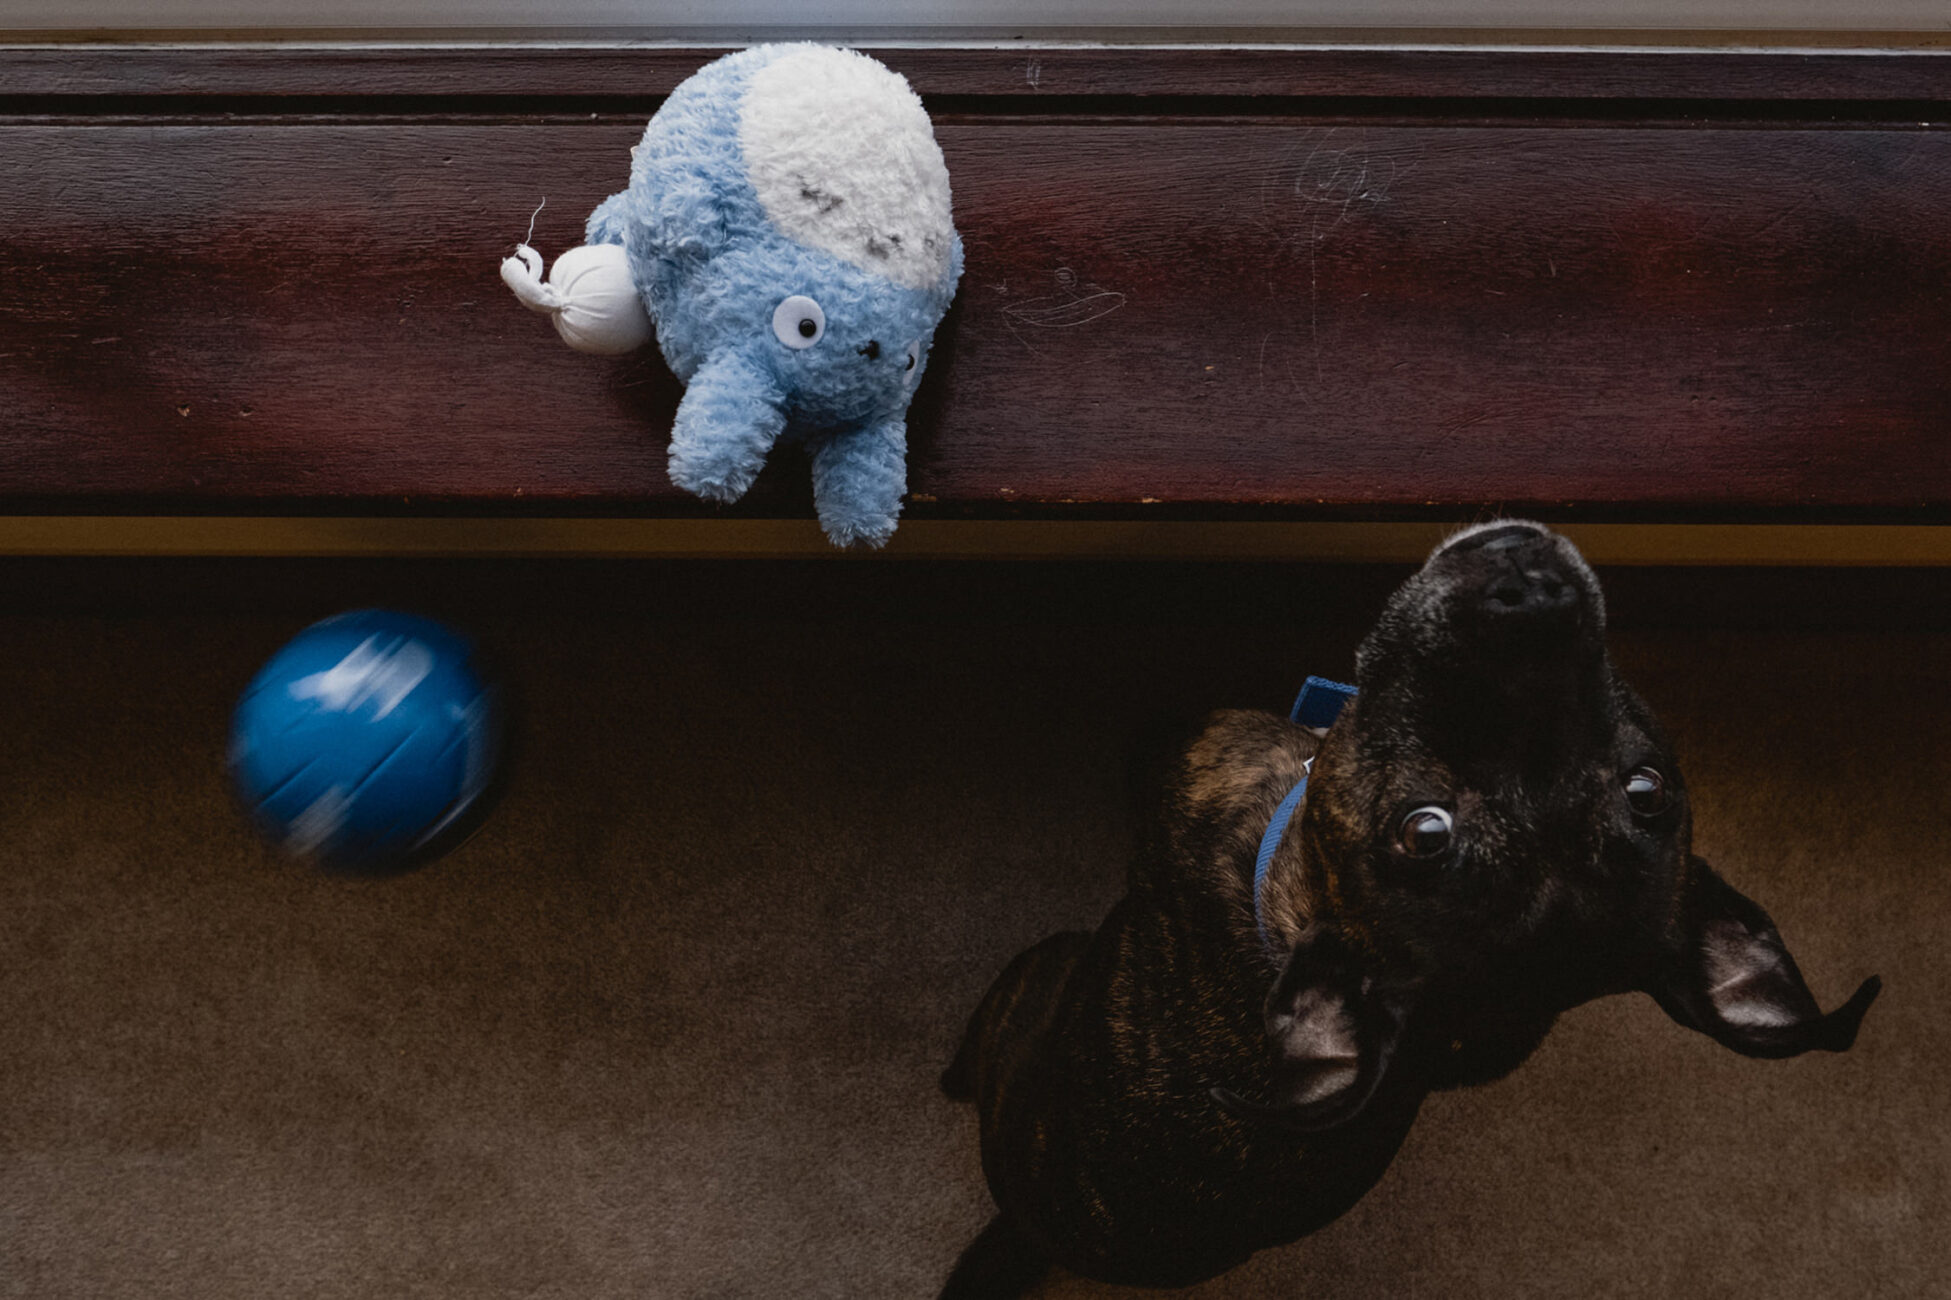 dog by the window looking back at the camera while a little blue ball is coming towards her during an essex family photoshoot